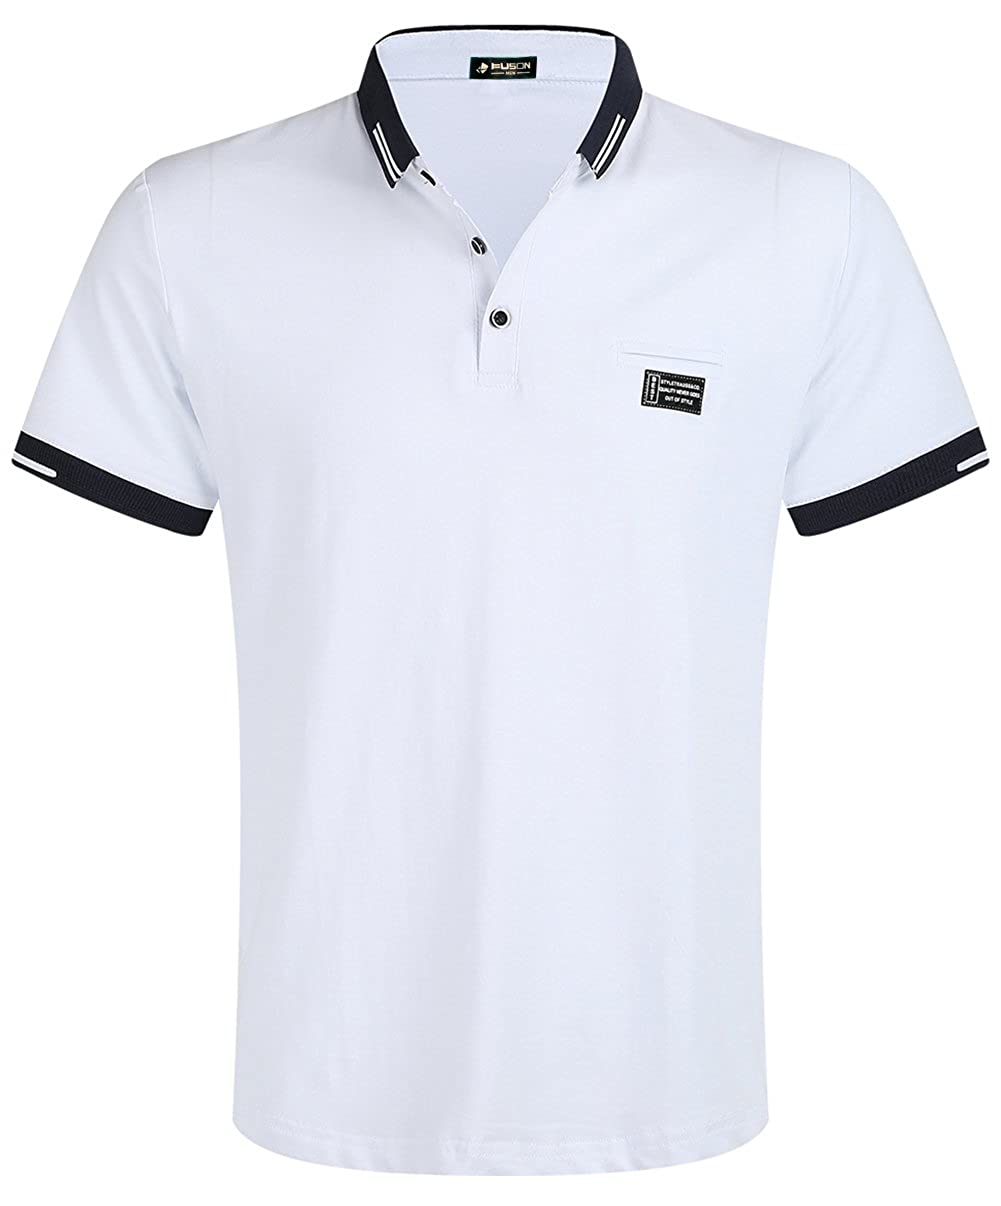 1d532b3666 Soft cotton material in breathable, basic pique polo shirt. Decorating with  a fake-pocket and a special logo. Three-button placket, normal size